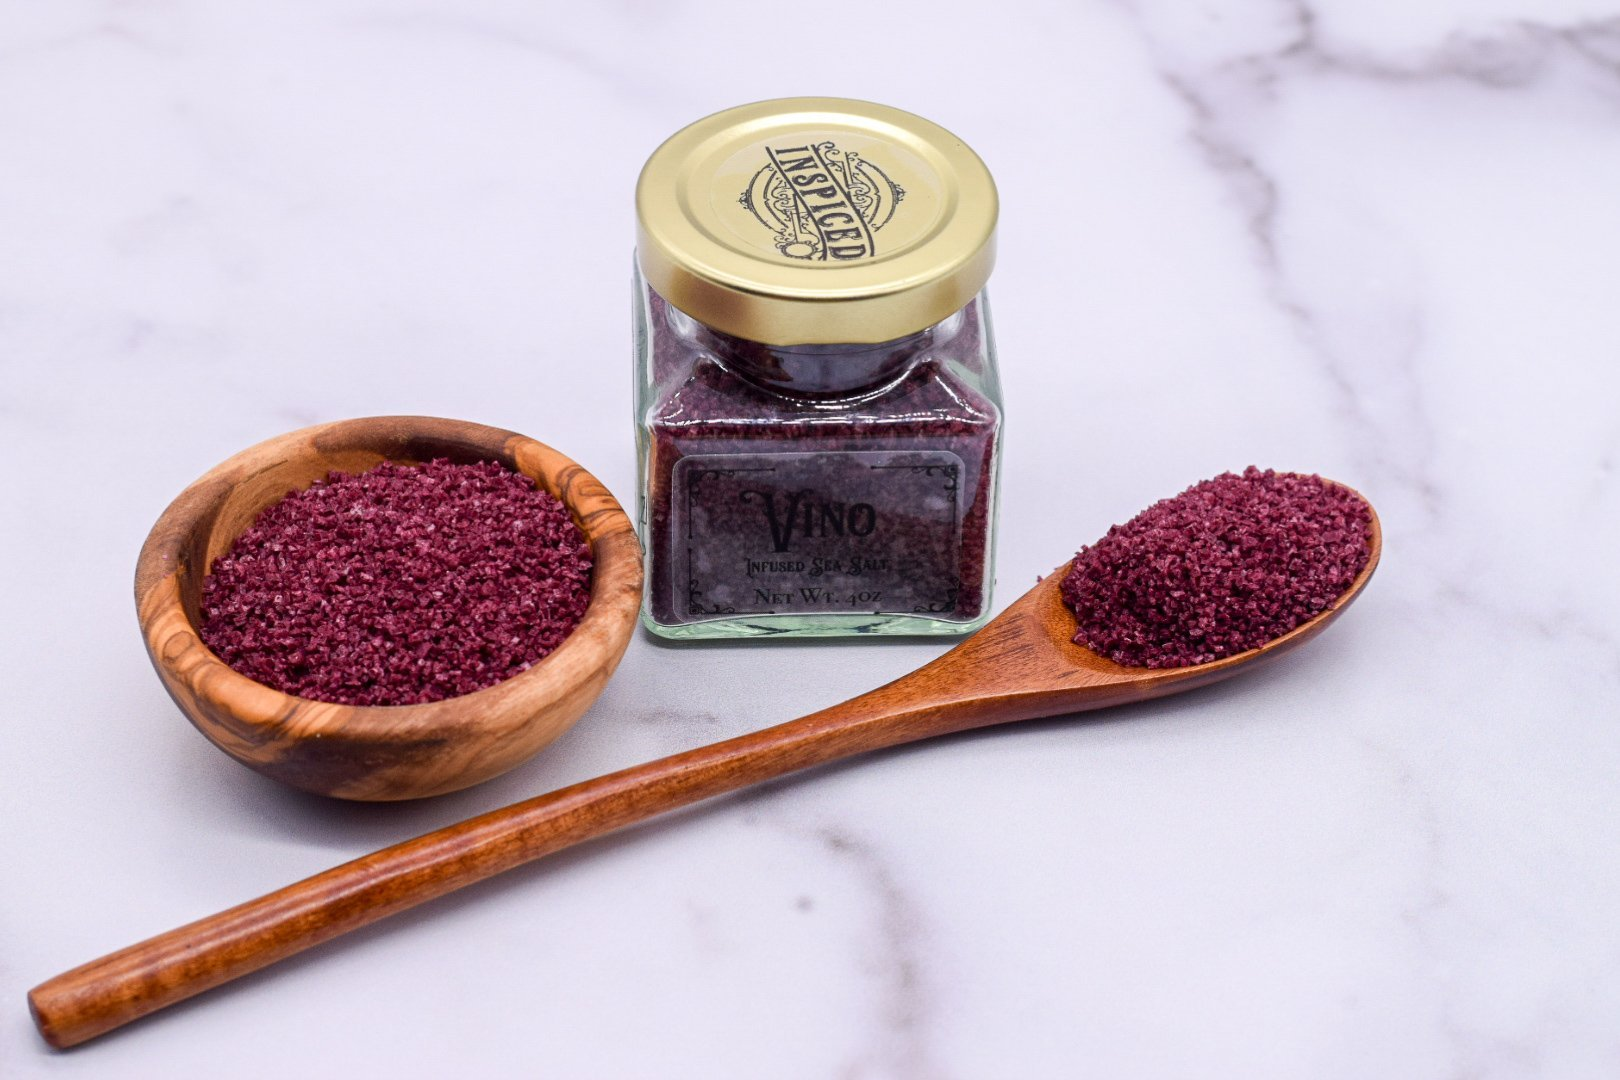 Vino Infused Sea Salt - Inspiced.com